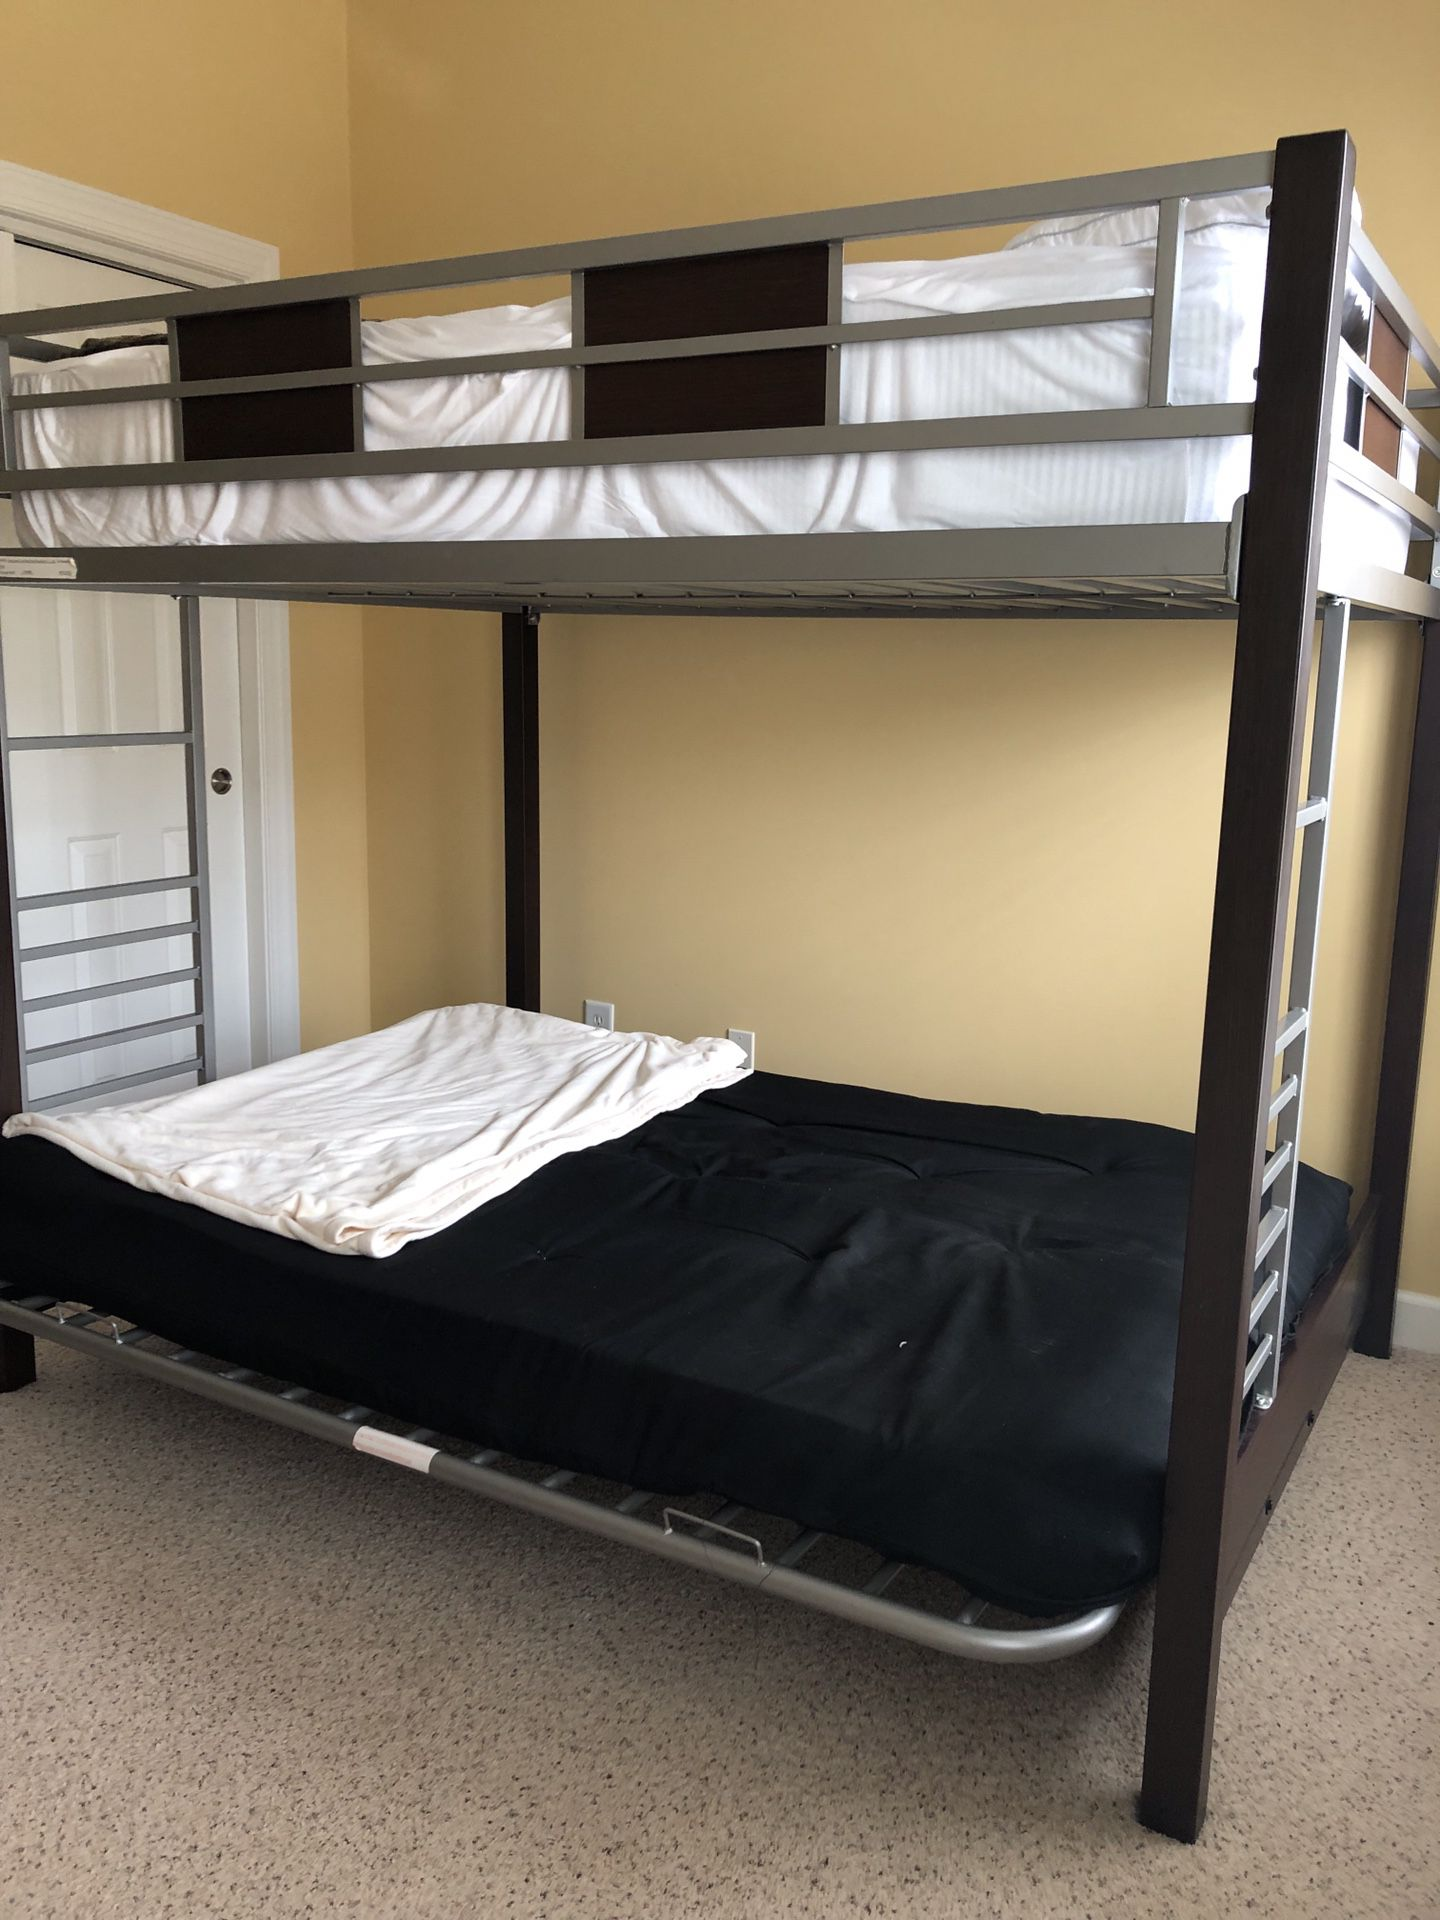 Bunk Bed From Rooms To Go Dong Guan Tian For Sale In Raleigh Nc Offerup